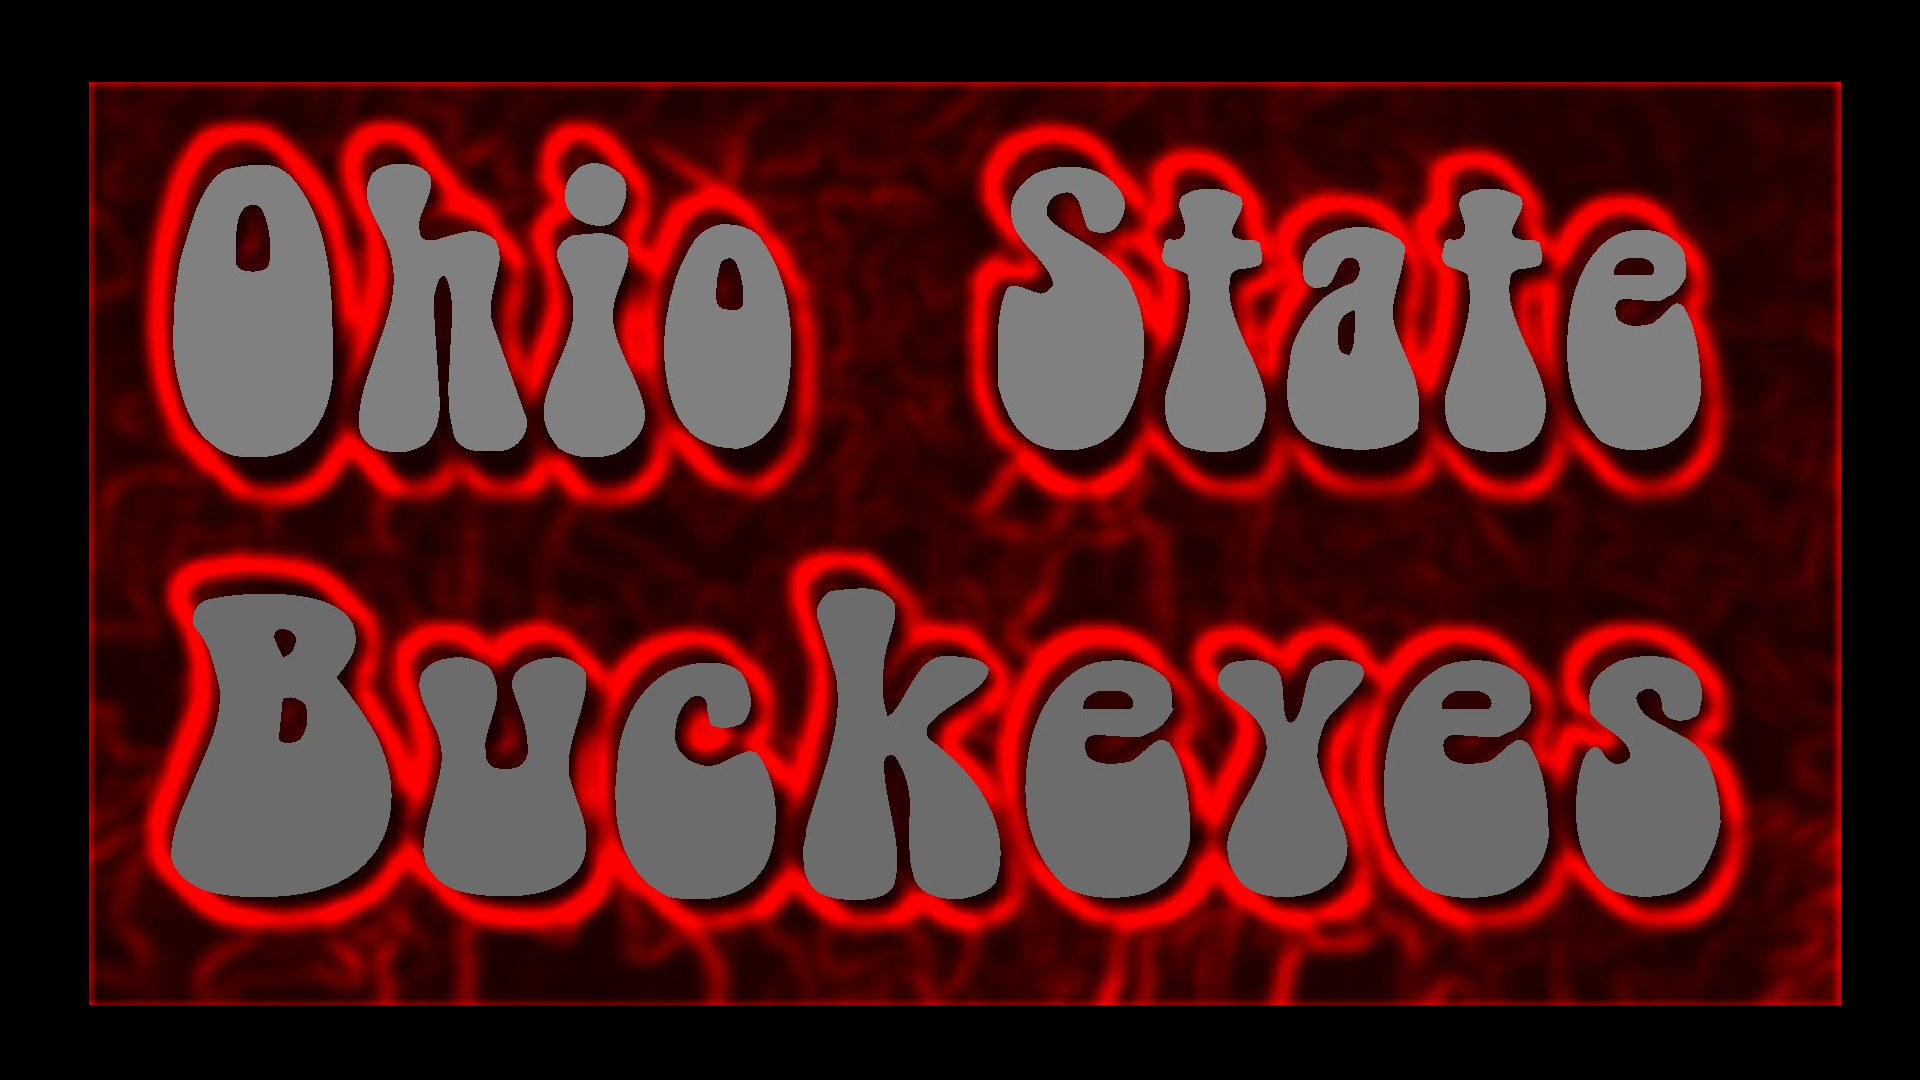 Wallpaper Of OHIO STATE BUCKEYES PSYCHODELIC GRAFFITI For Fans Ohio State Buckeyes